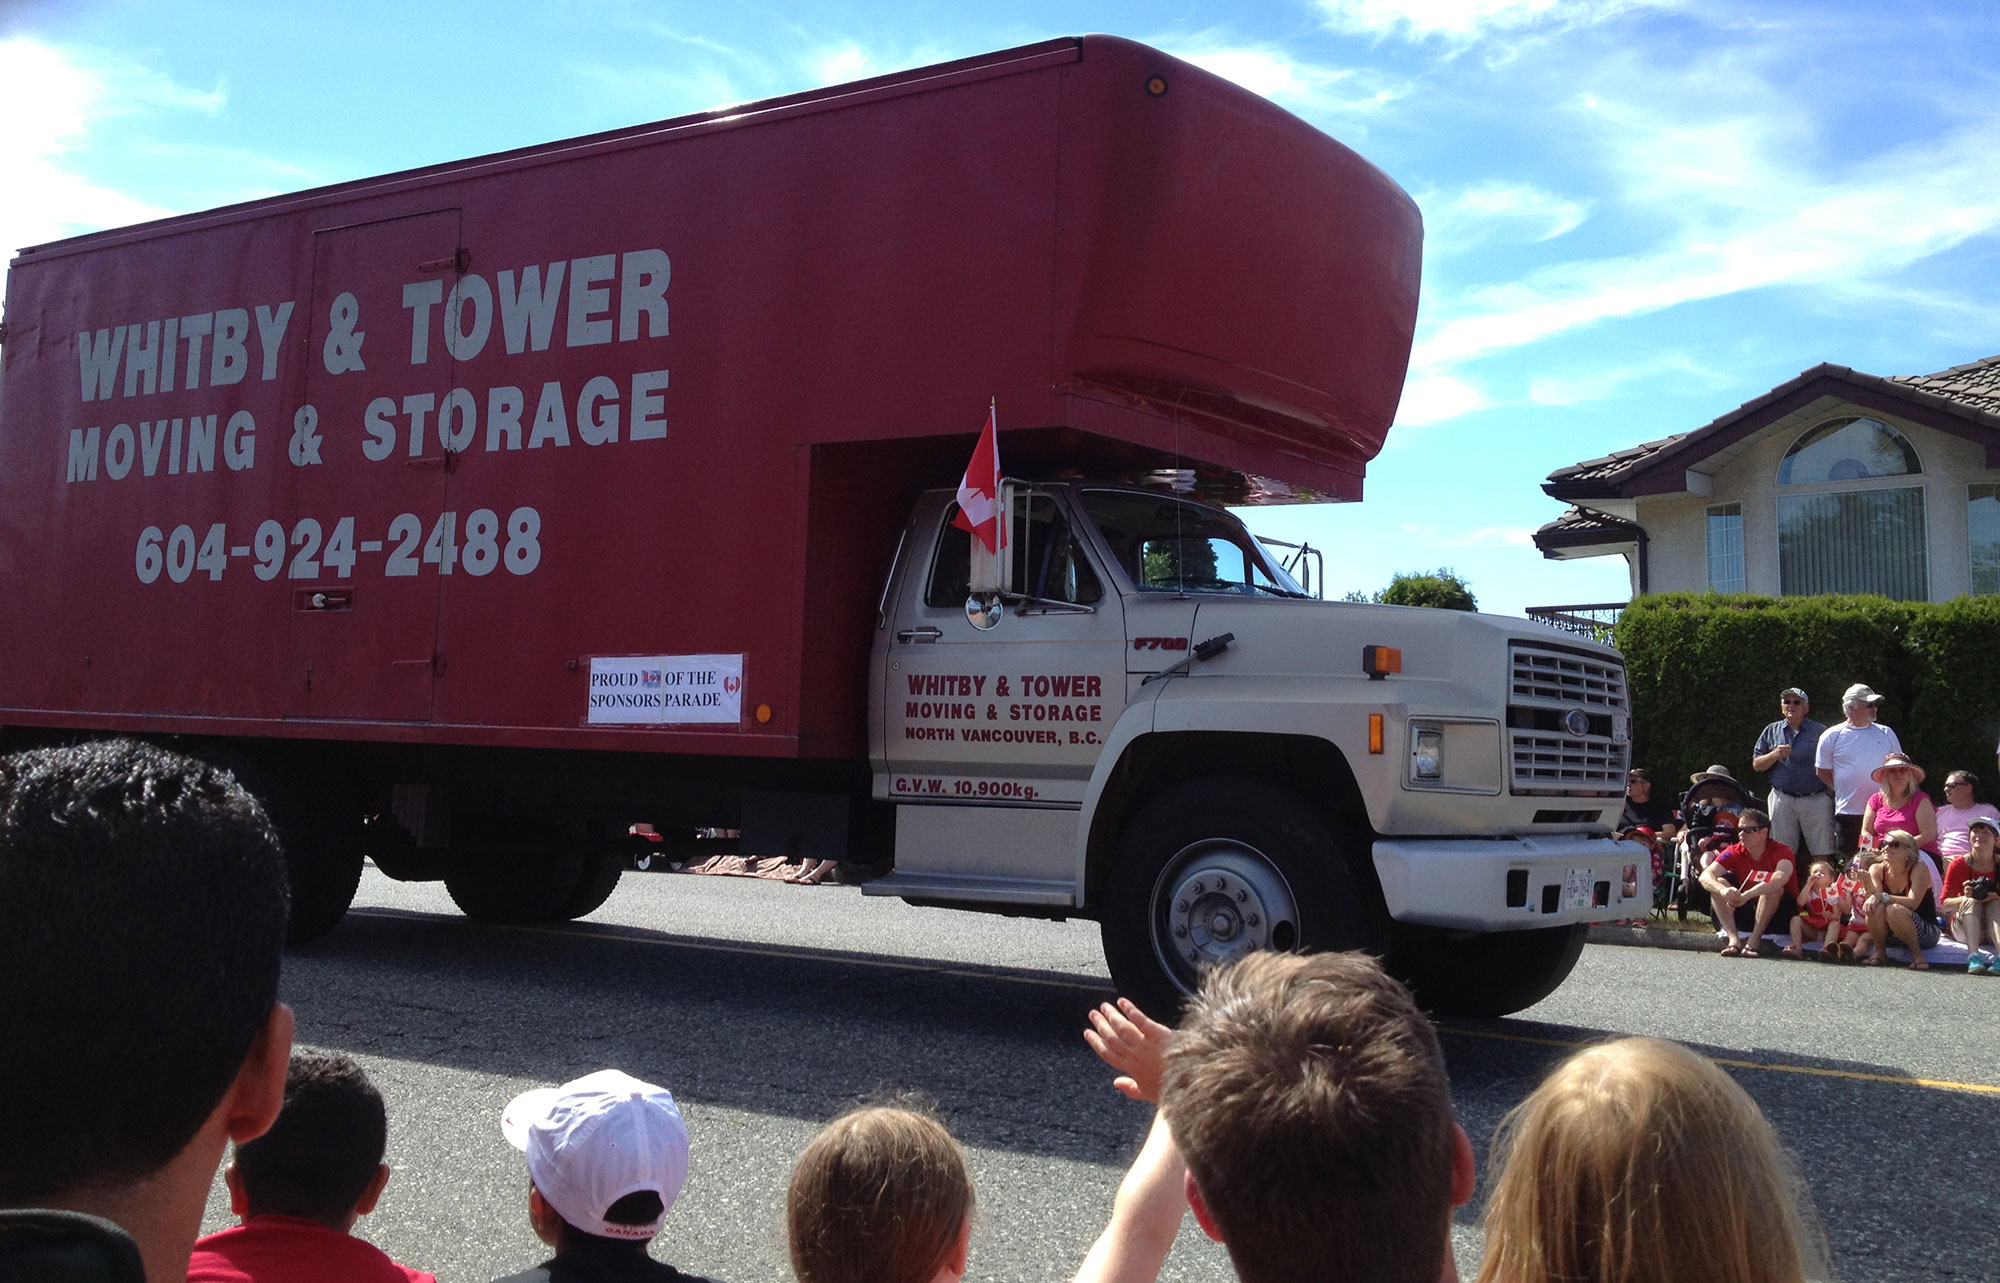 Whitby & Tower Moving & Storage